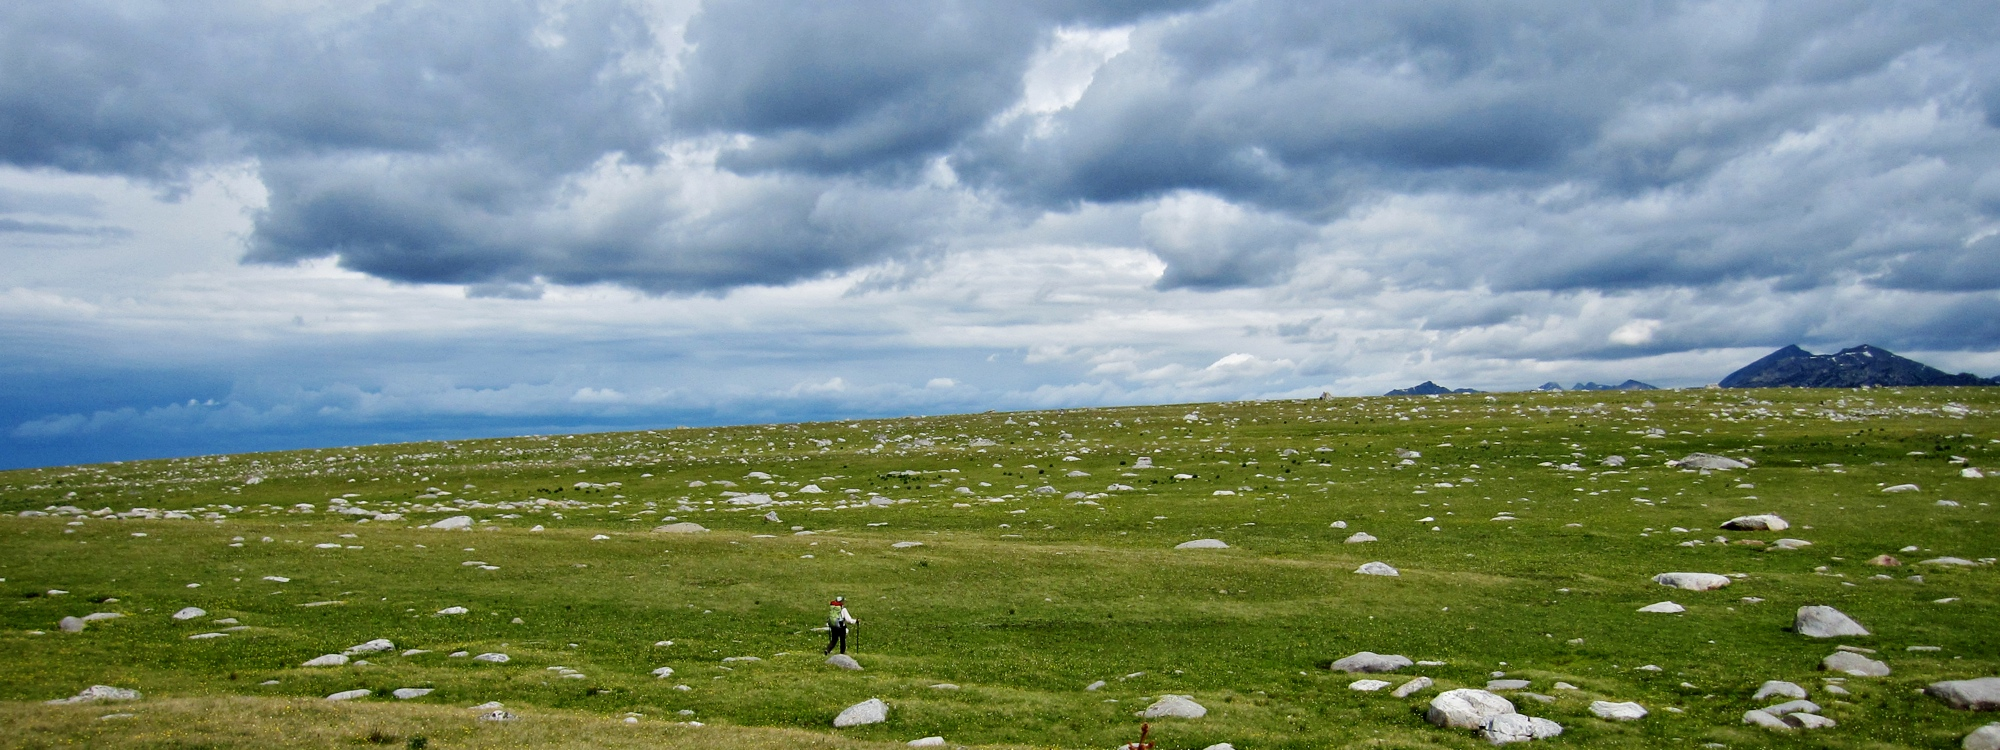 Racing across a plateau with building summer storms. Wind River Range, Wyoming.